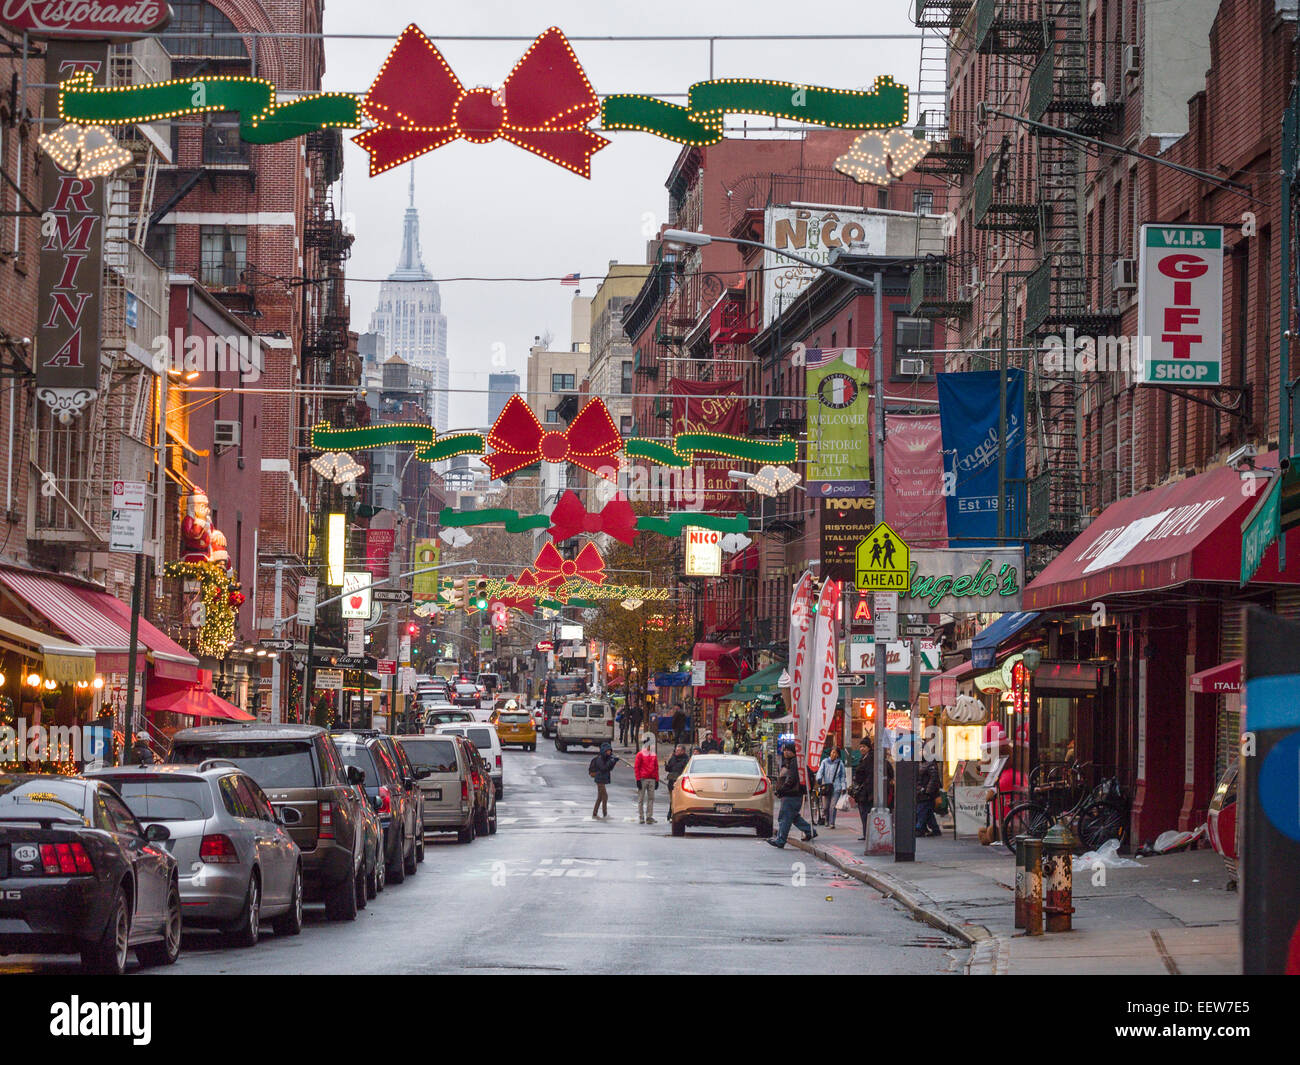 Little Italy all dressed for Christmas. Red bows. lights & a Merry Christmas sign liven up New York's little - Stock Image